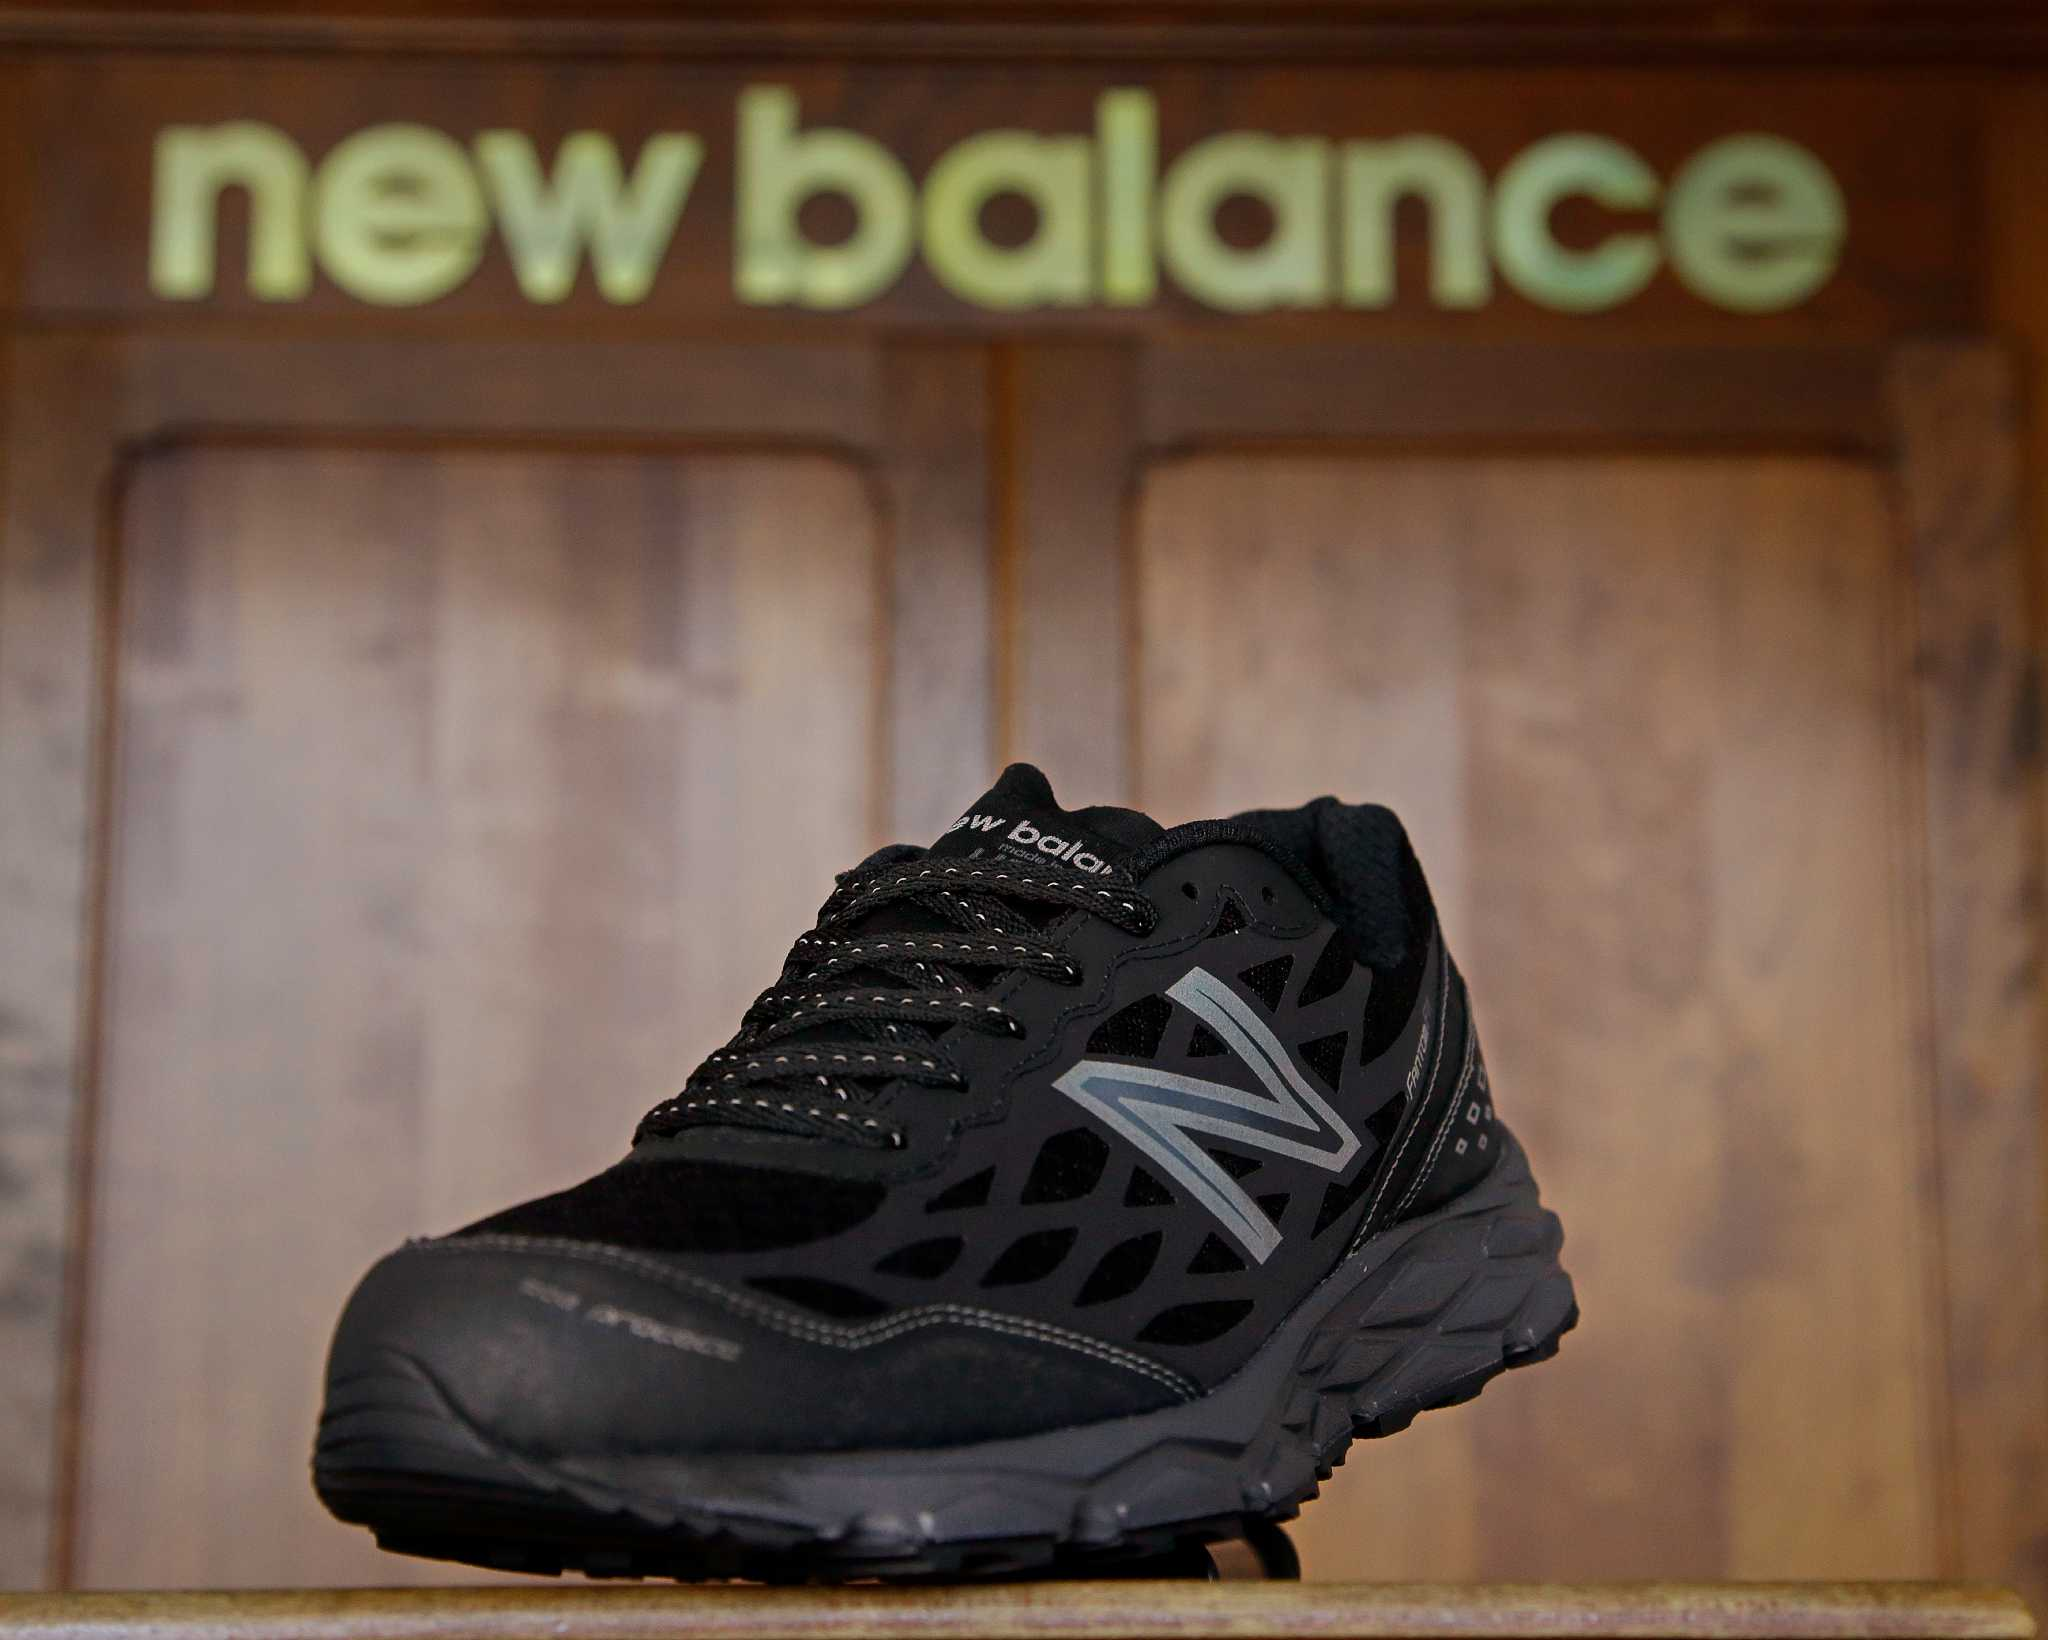 Neo Nazis have declared New Balance the 'Official Shoes of